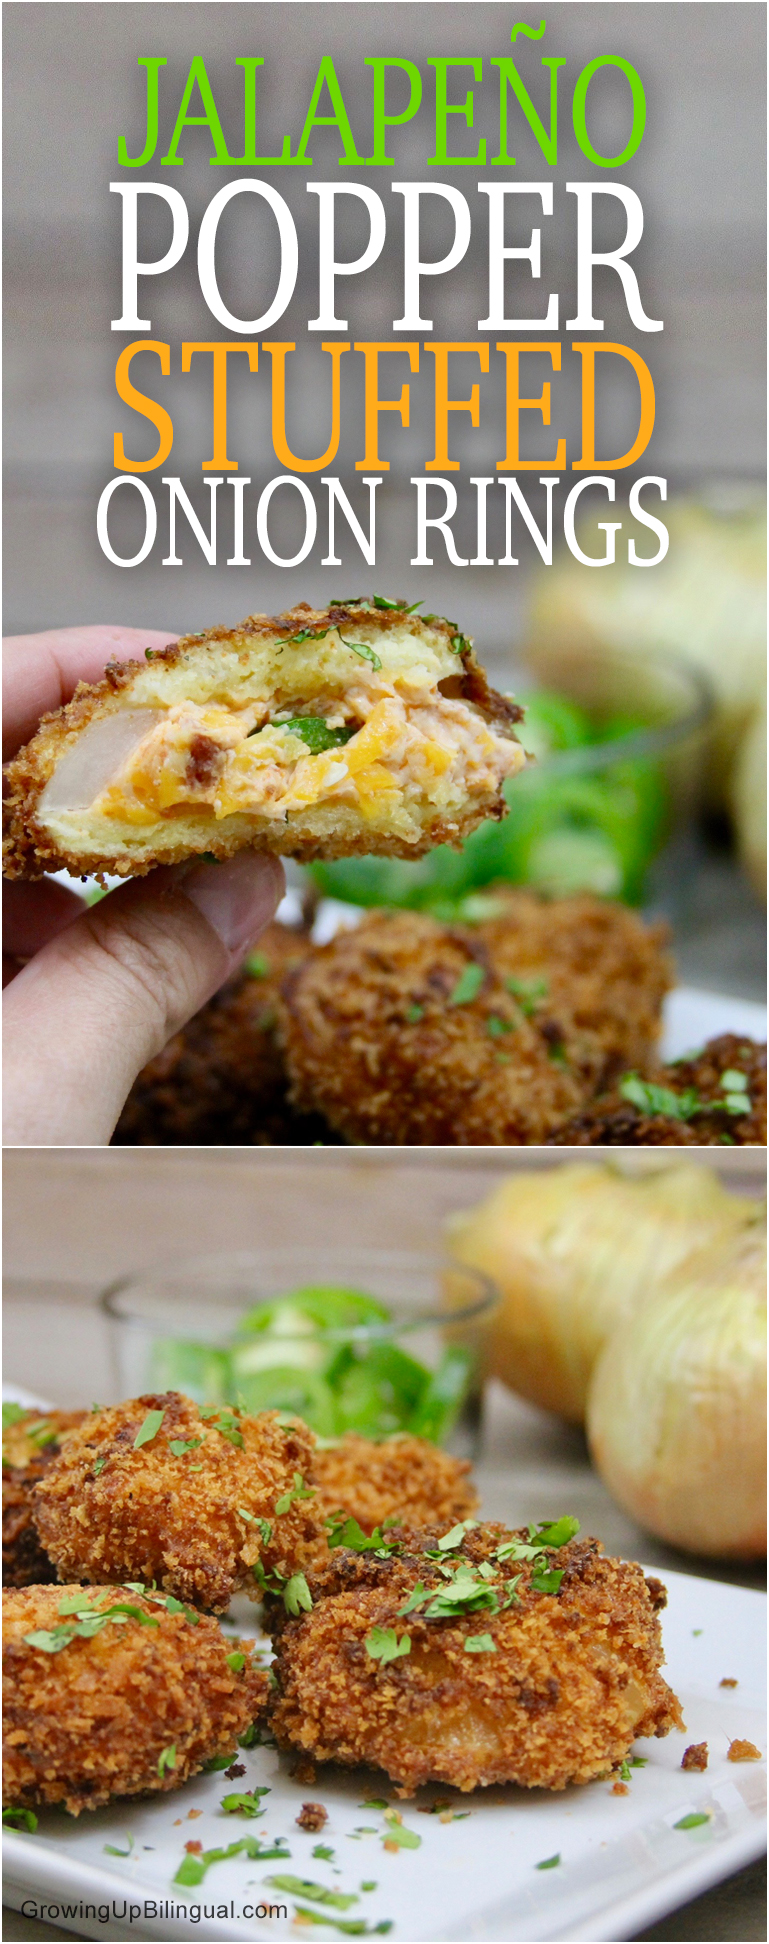 Jalapeño Popper Stuffed Onion Rings